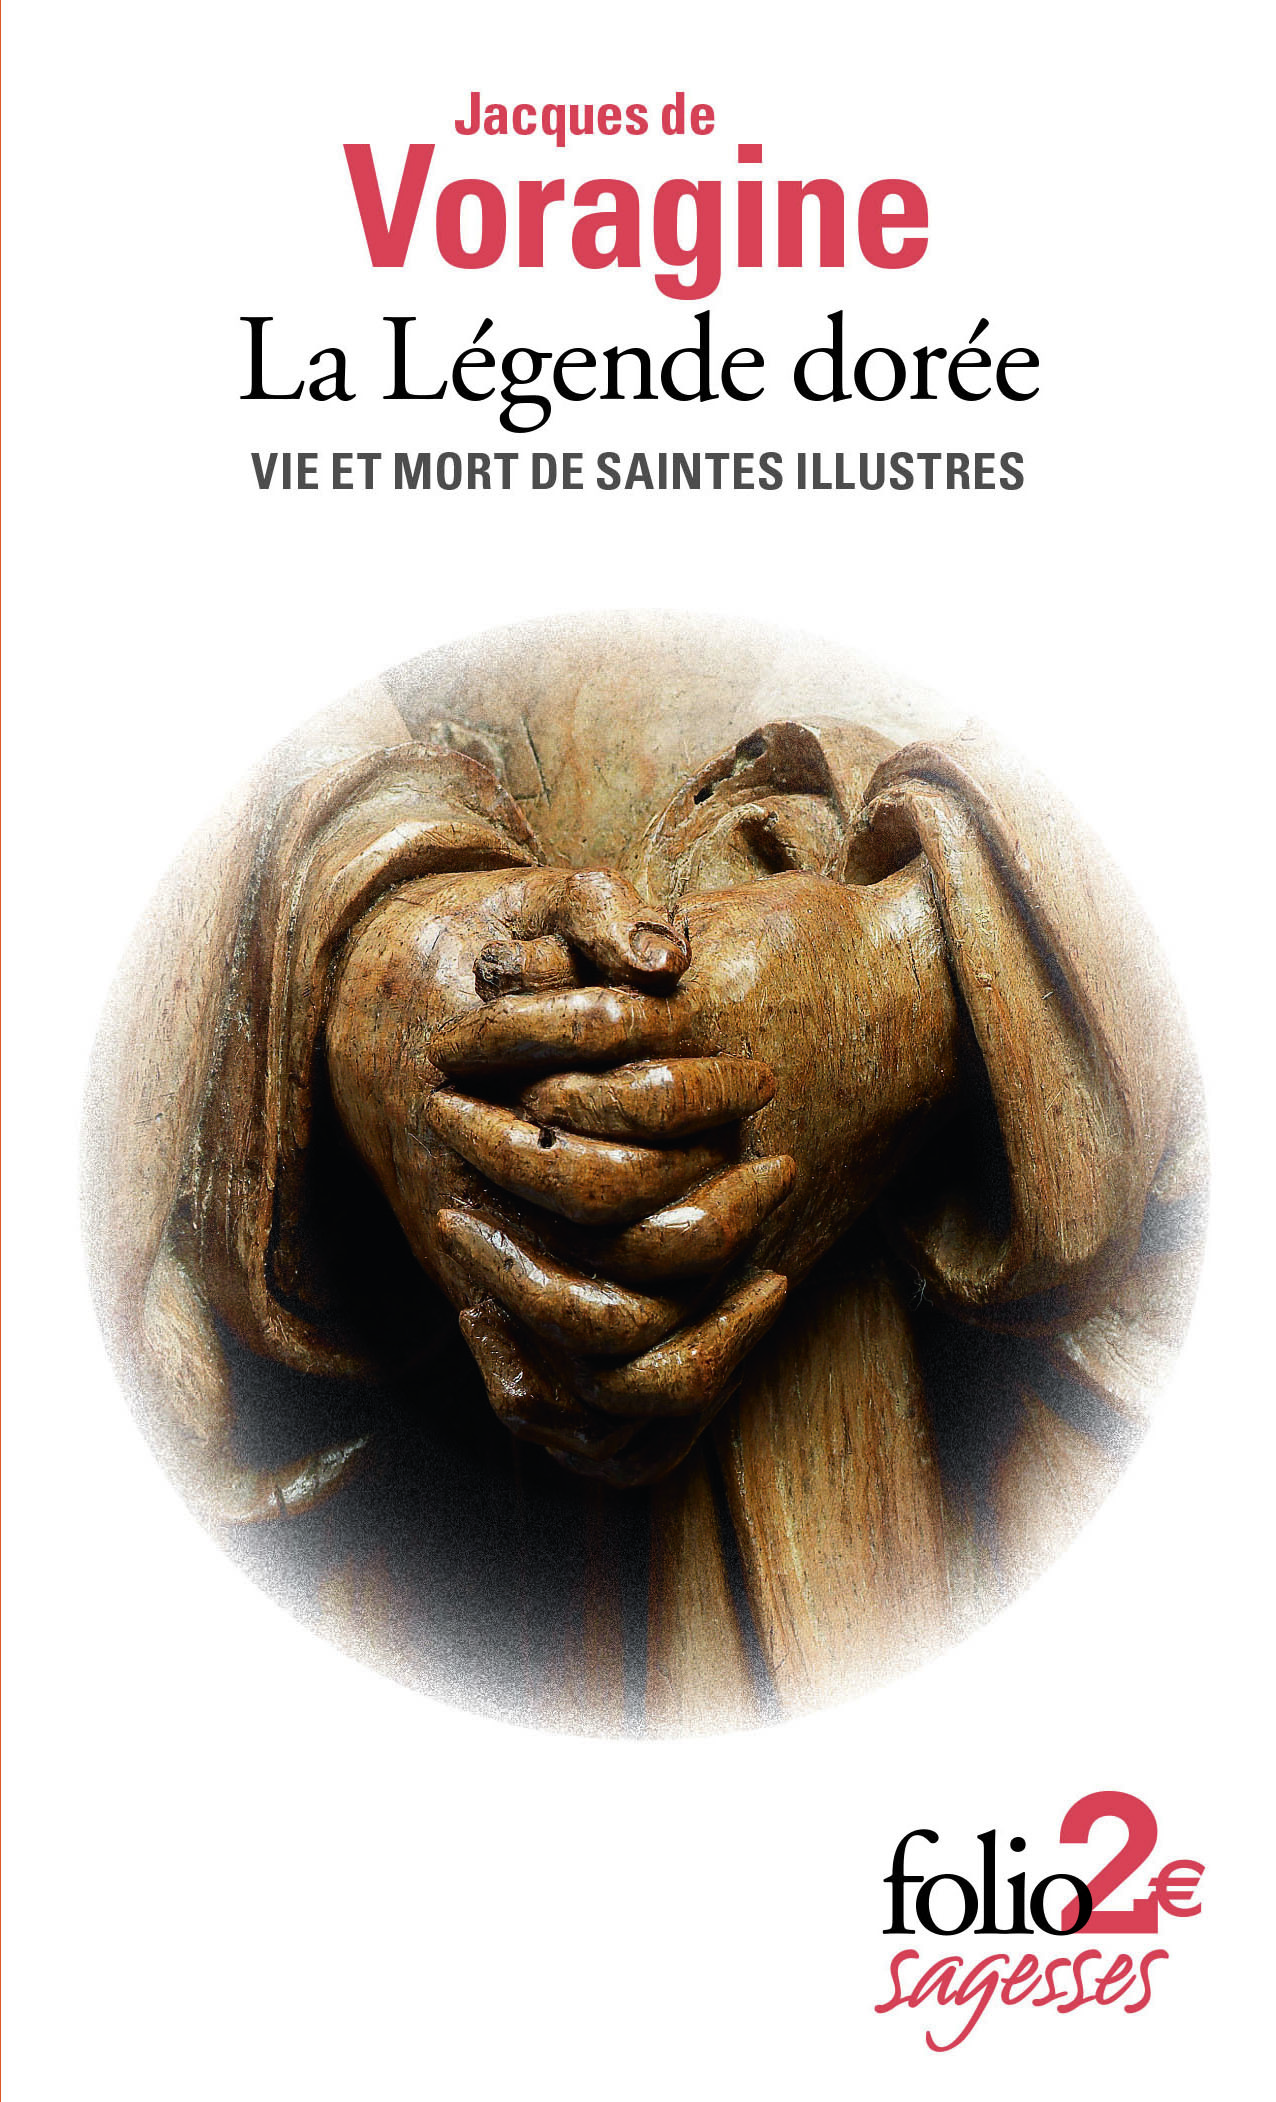 LA LEGENDE DOREE (VIE ET MORT DE SAINTES ILLUSTRES)